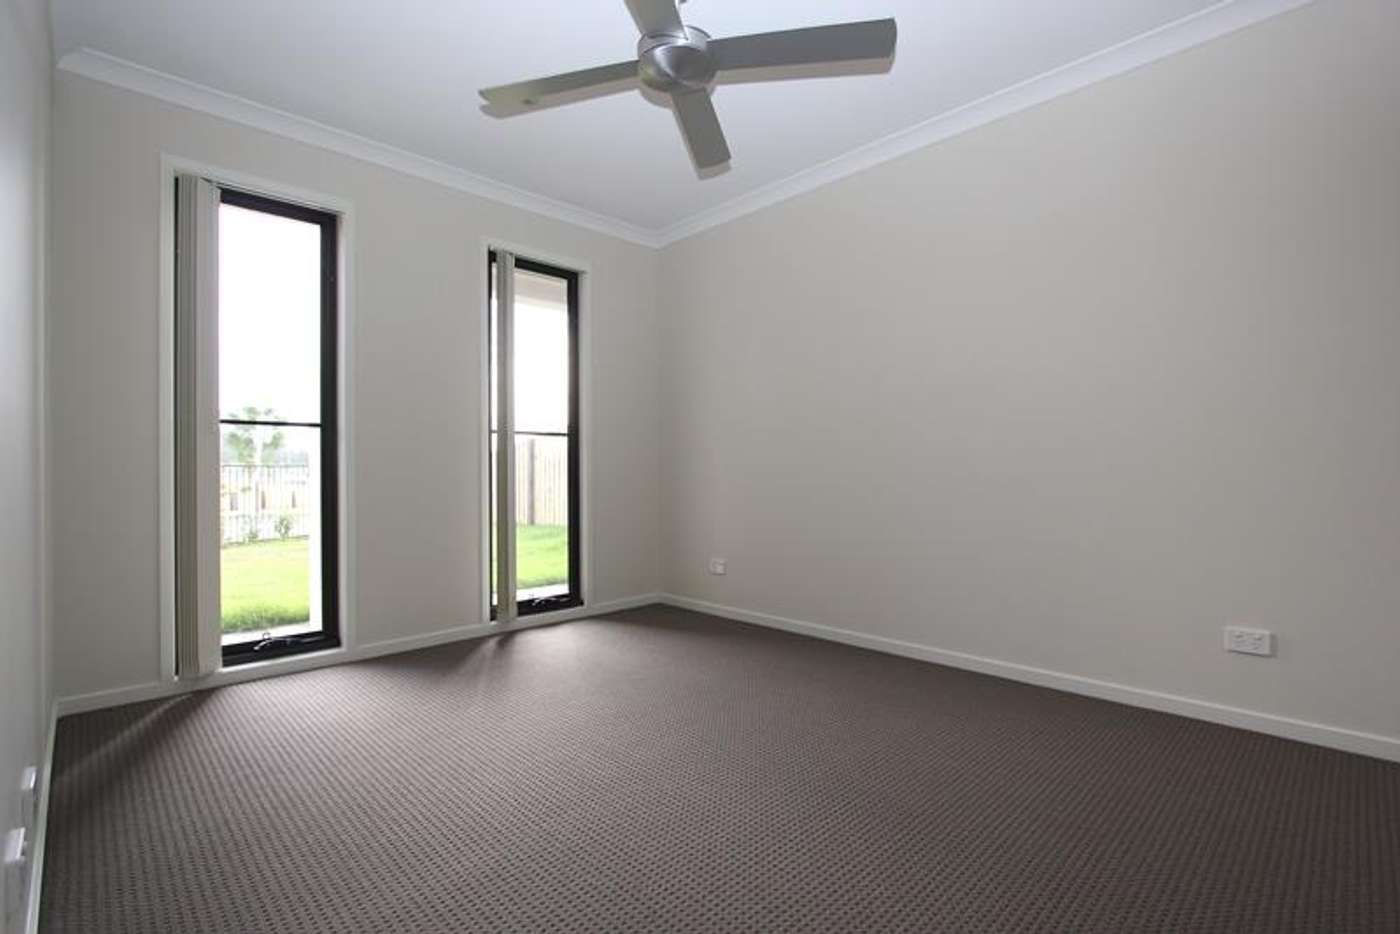 Seventh view of Homely house listing, 3 Daniels Lane, Yarrabilba QLD 4207